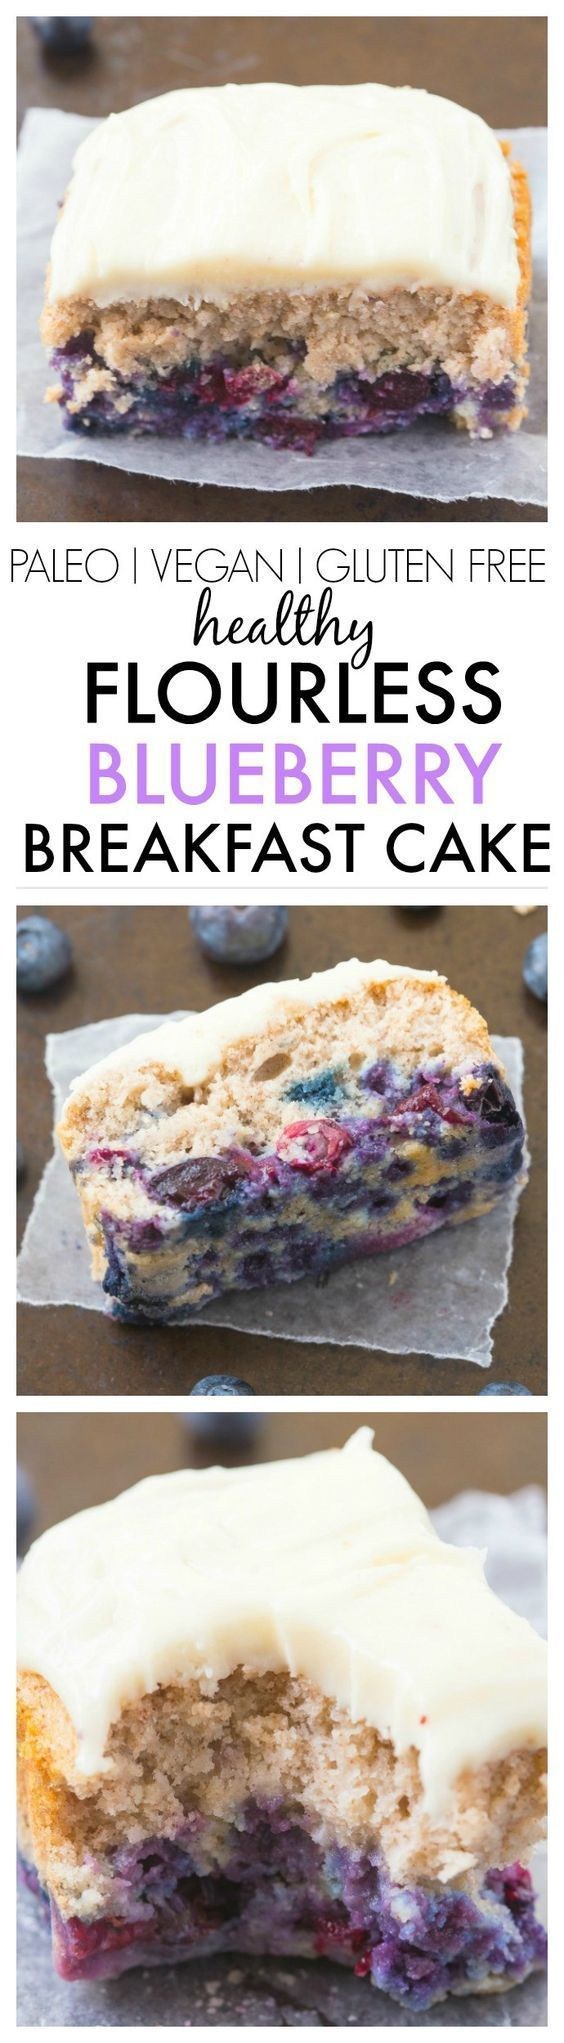 37 best images about Paleo Cake Recipes on Pinterest ...